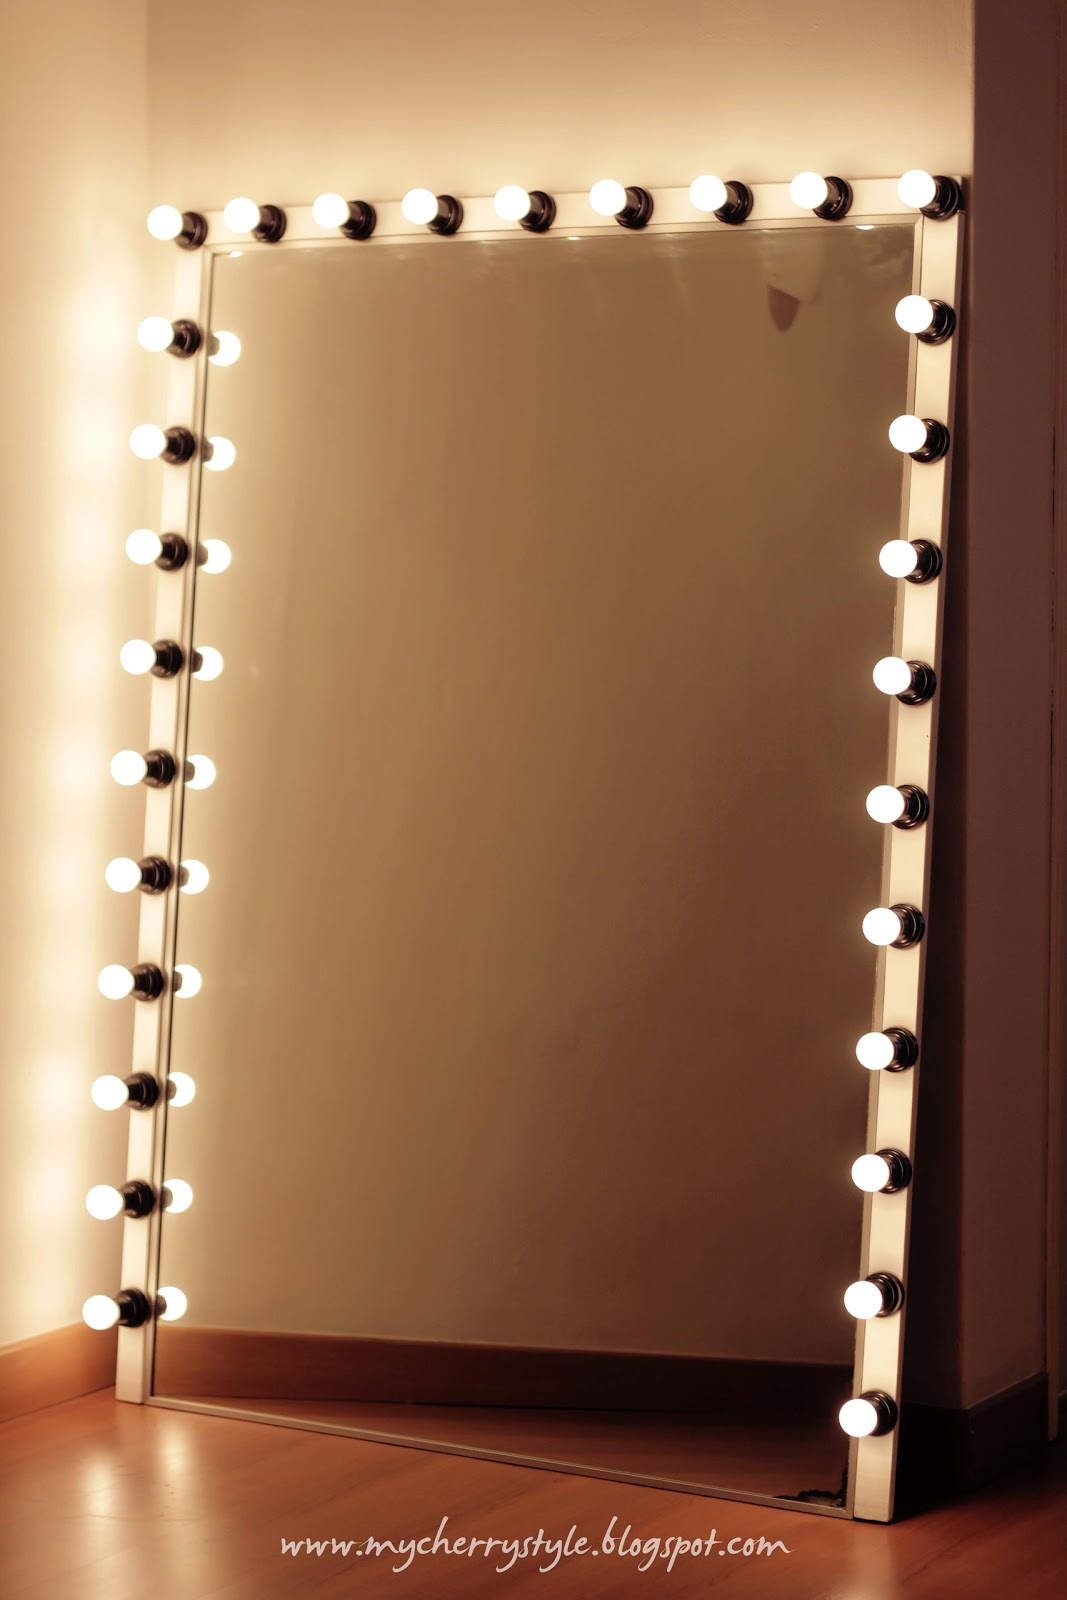 Vanity Lights Installed On Mirror : DIY Hollywood-style mirror with lights! Tutorial from scratch. for real. my cherry style